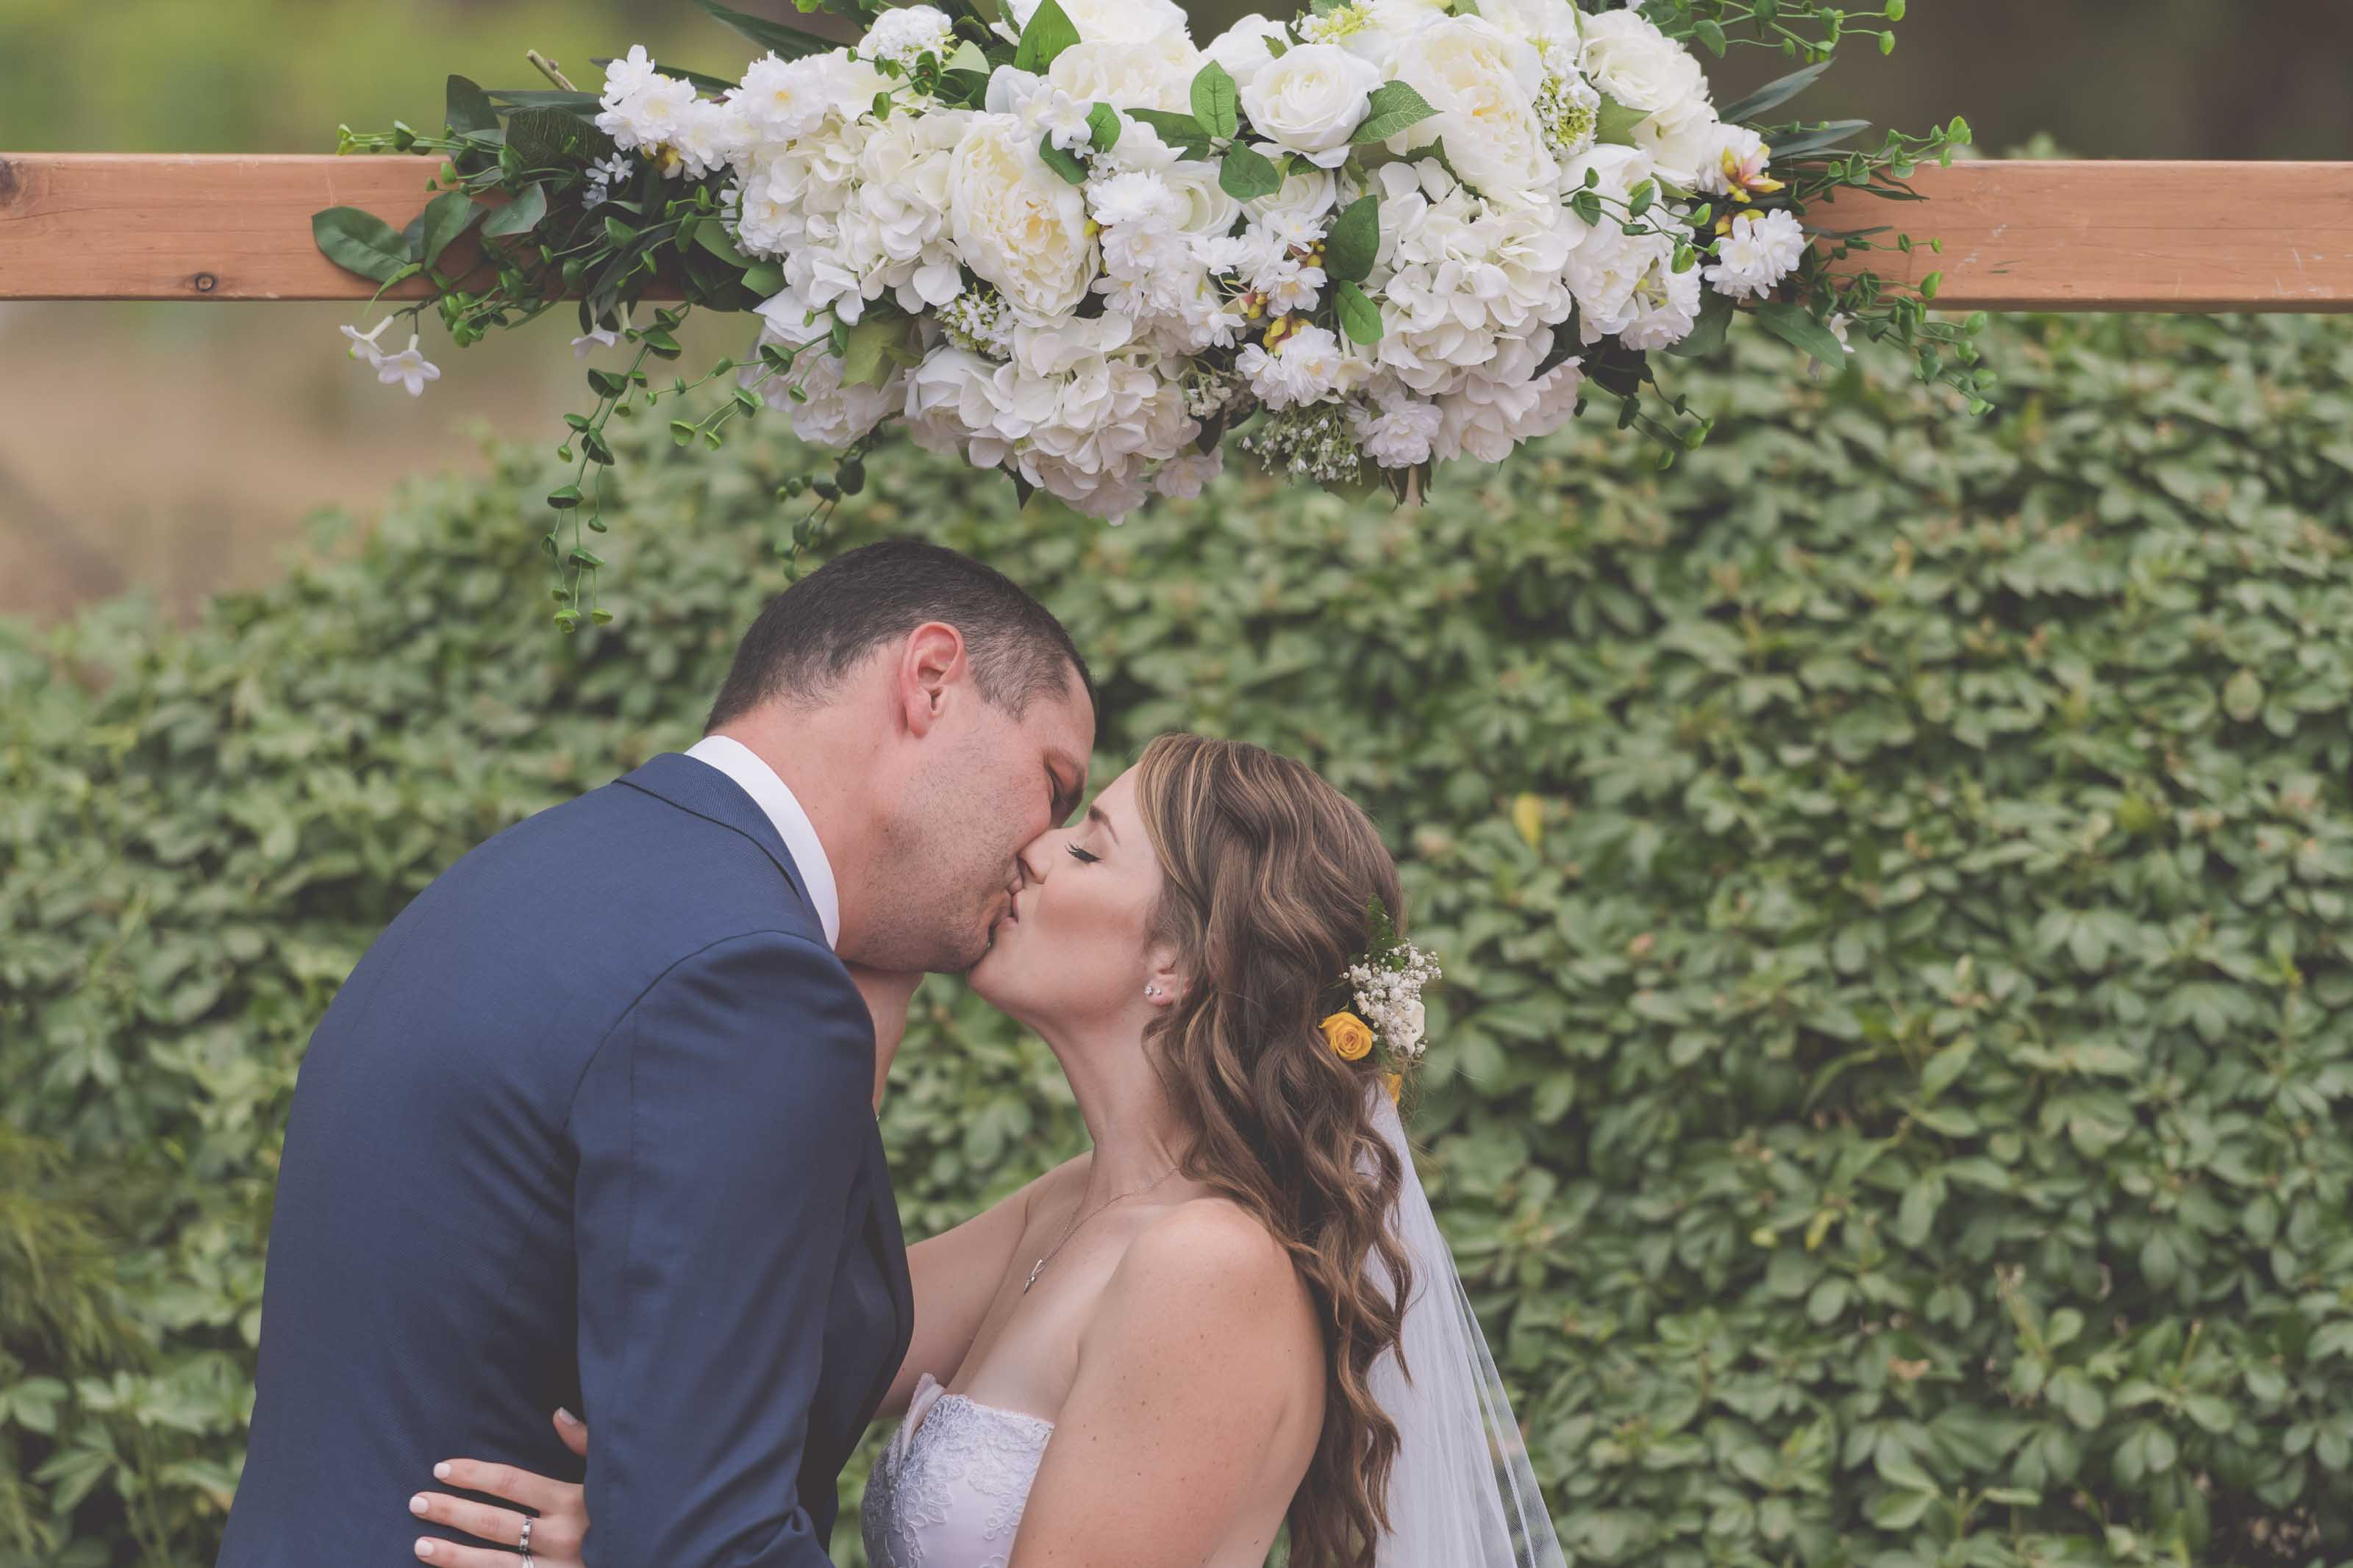 Wedding Photography Melbourne by Pause The Moment - Bride and groom share their first kiss at this Melbourne wedding - Paringa Estate Wedding Photographer